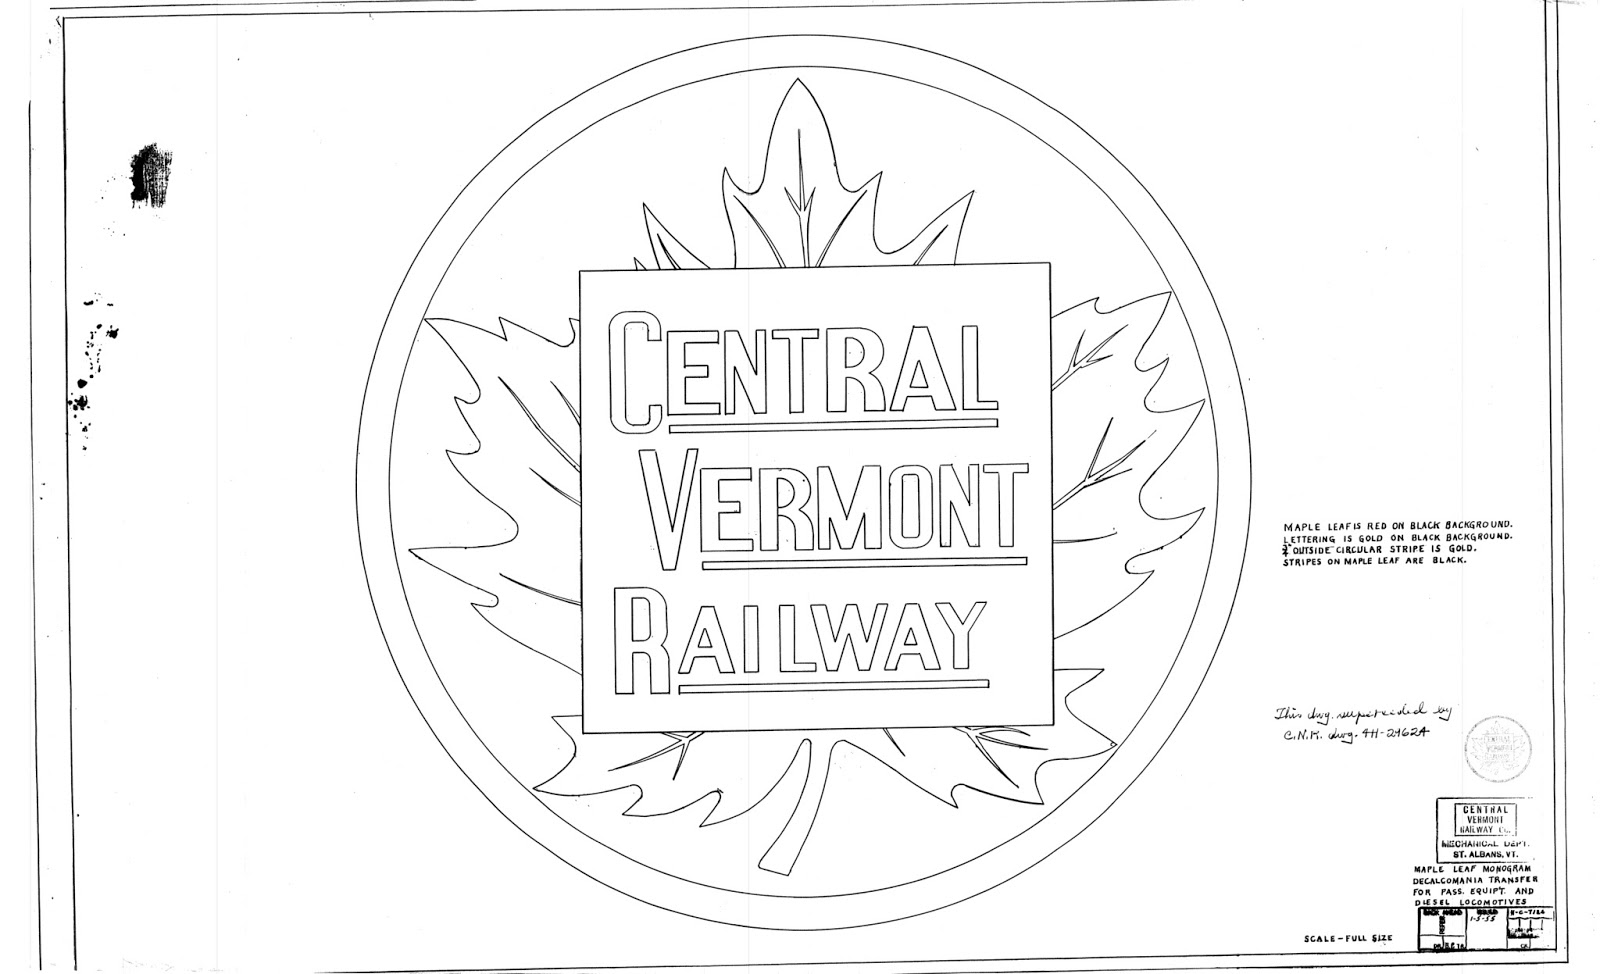 central vermont railway  central vermont stenciling diagrams